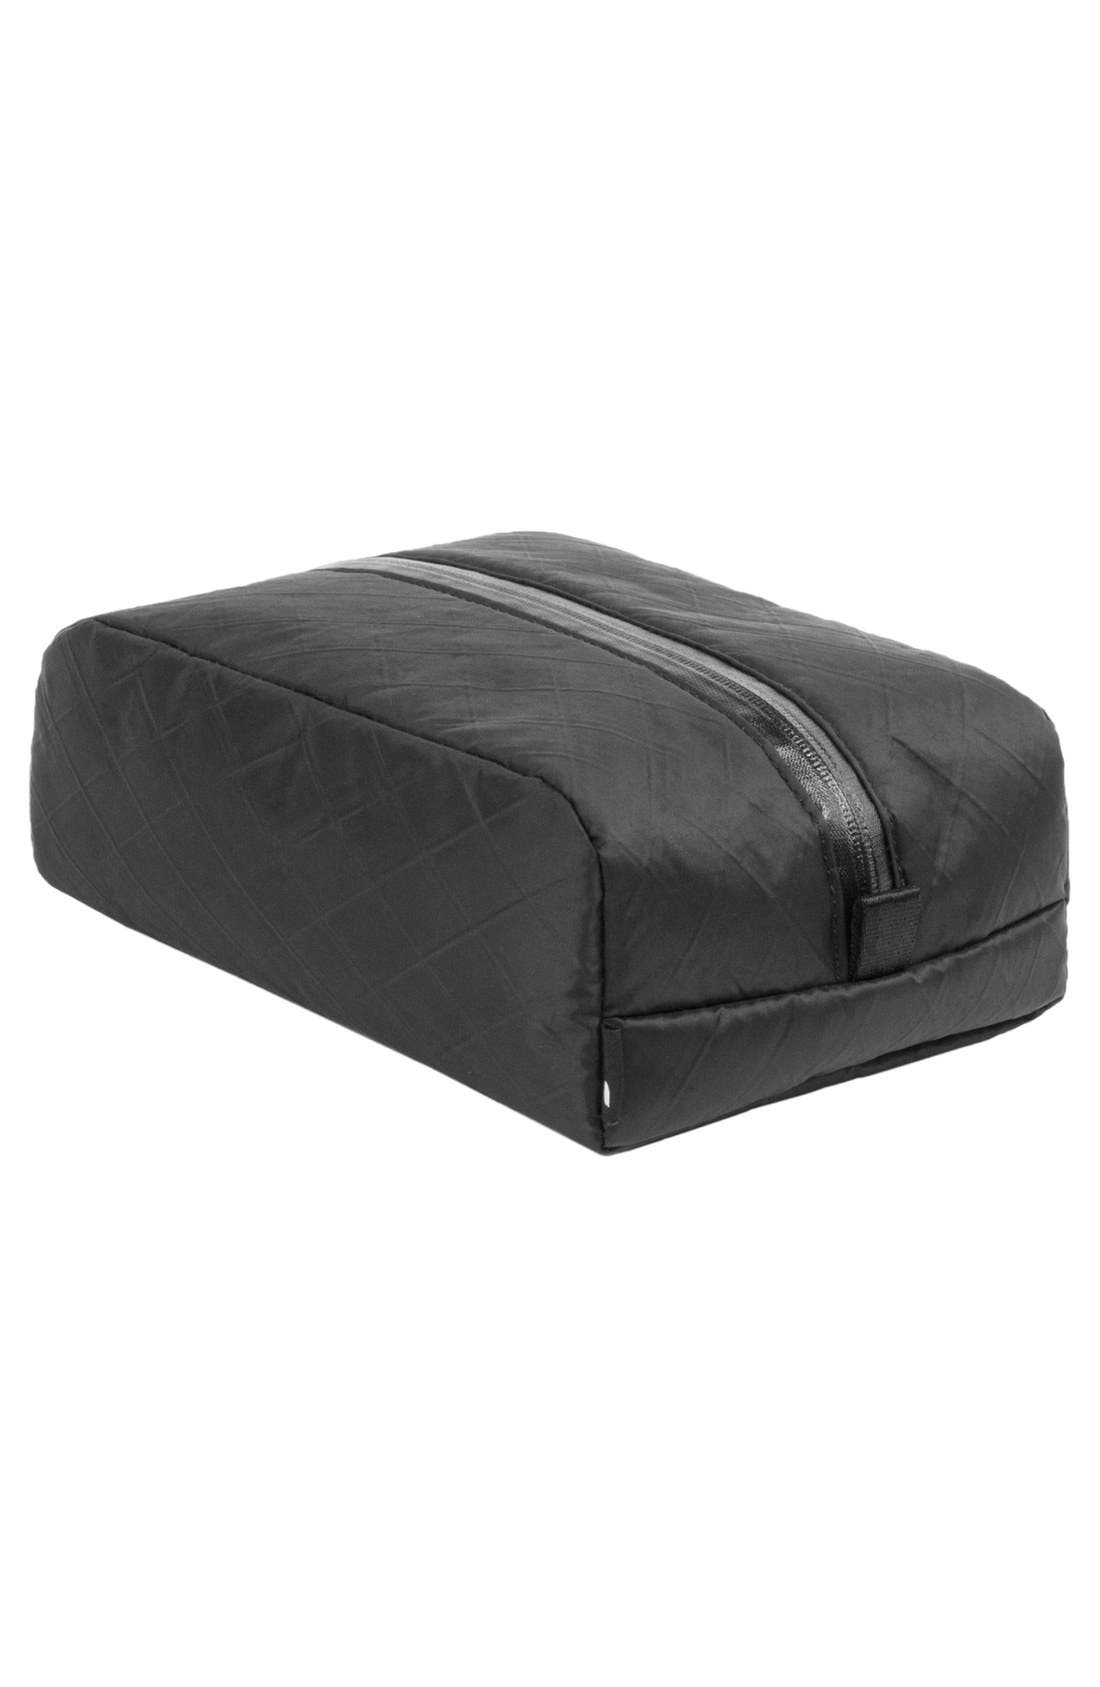 Diamond Wire Dopp Kit,                             Alternate thumbnail 5, color,                             Black